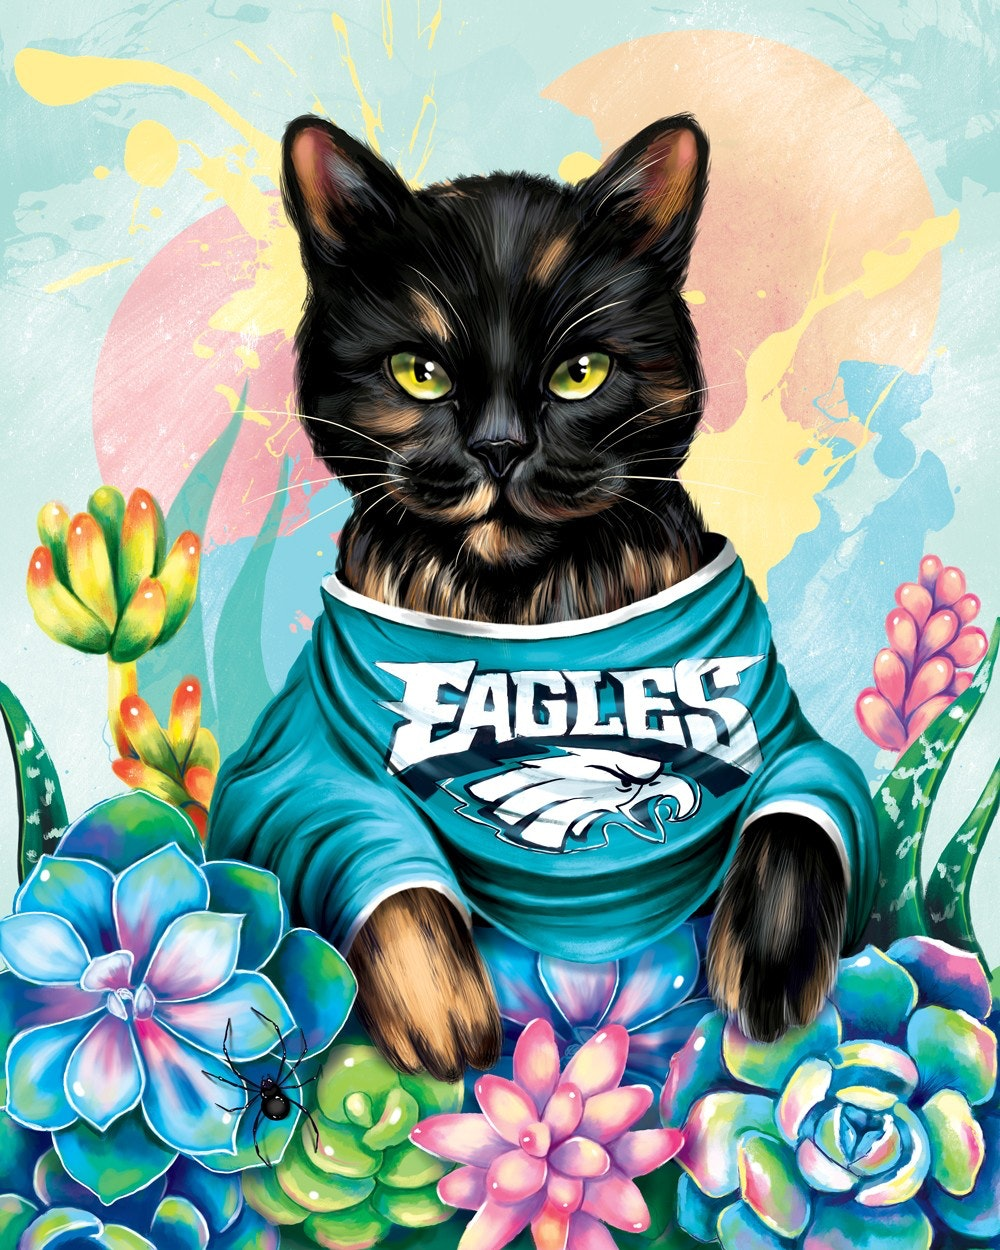 cat in eagles jersey